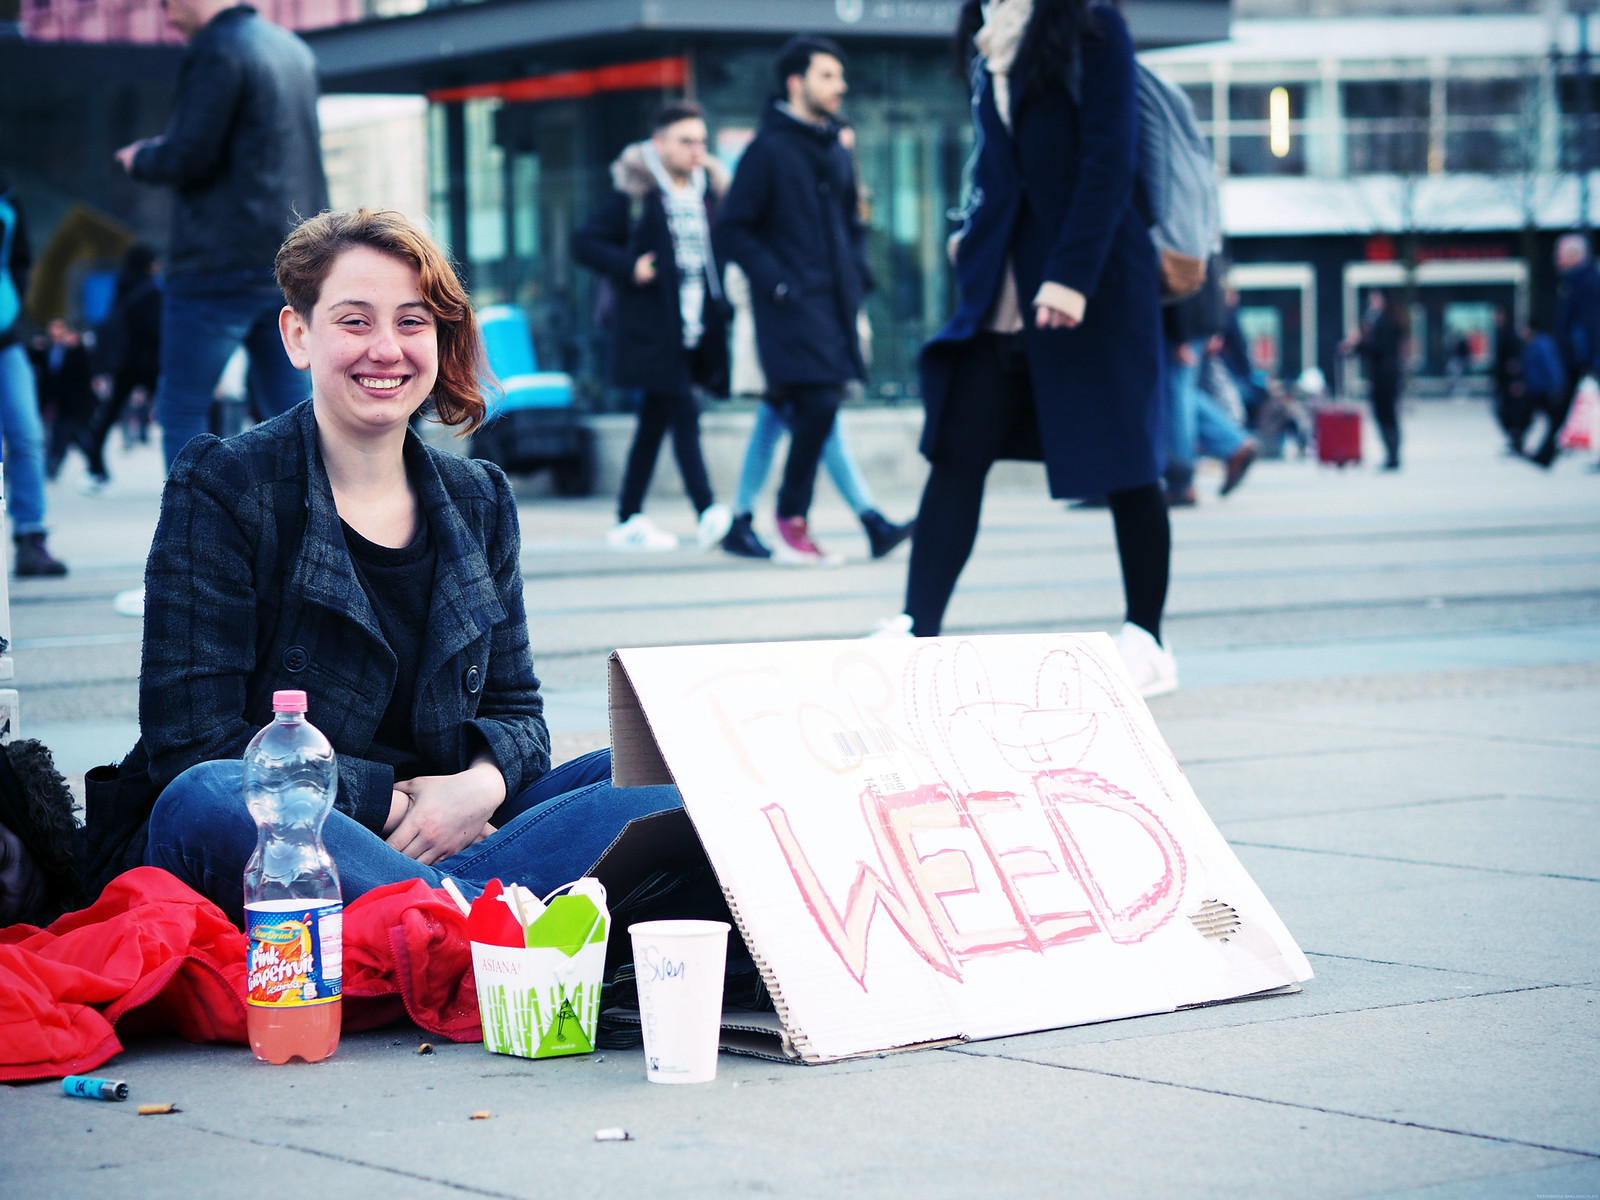 Girl Busking for Weed Berlin Streets Hipster_effected